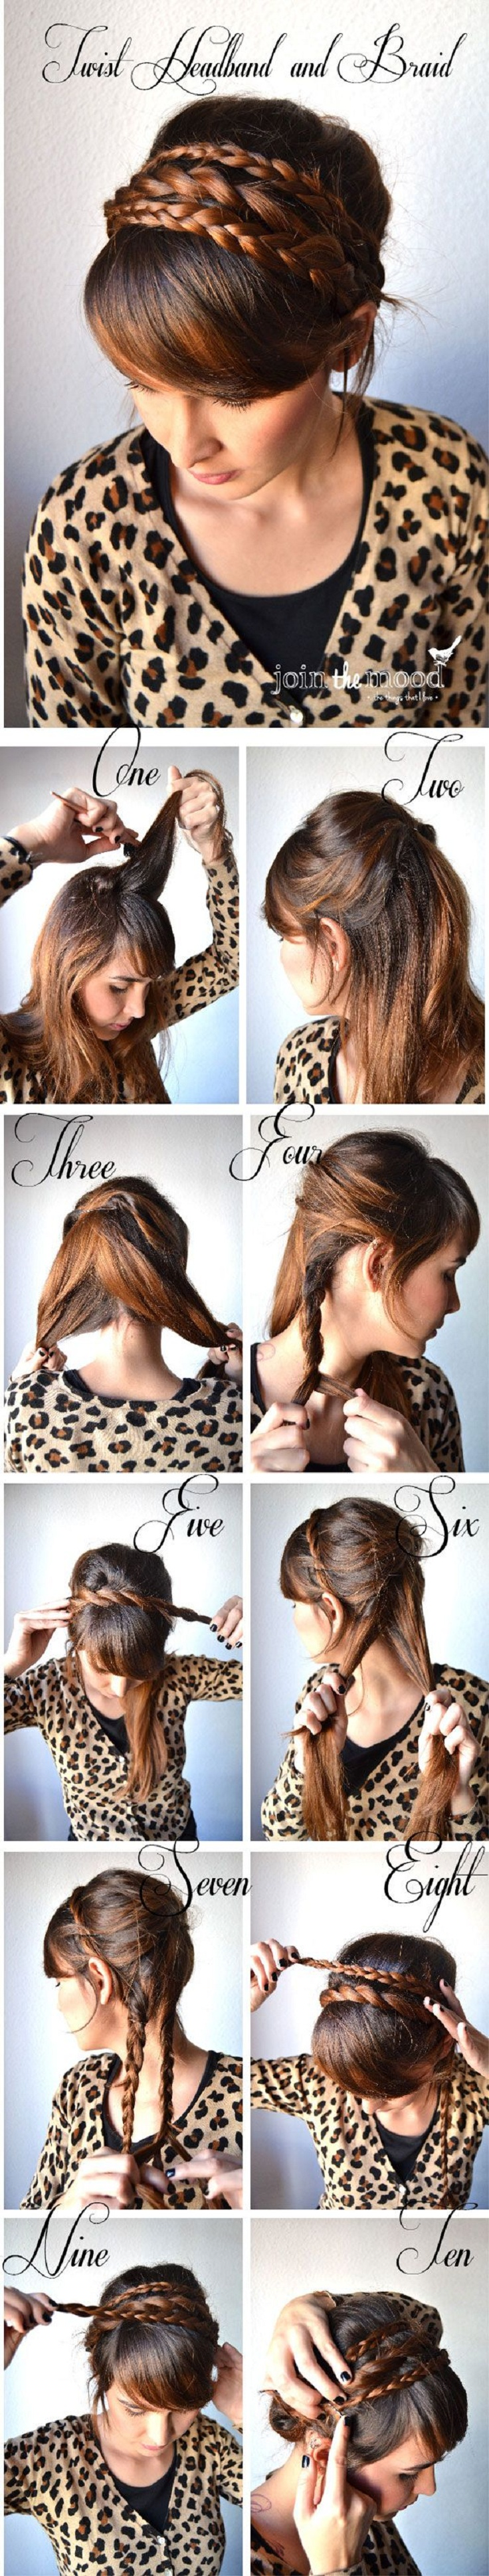 Adorable Hairstyle Tutorials: Braided Updo